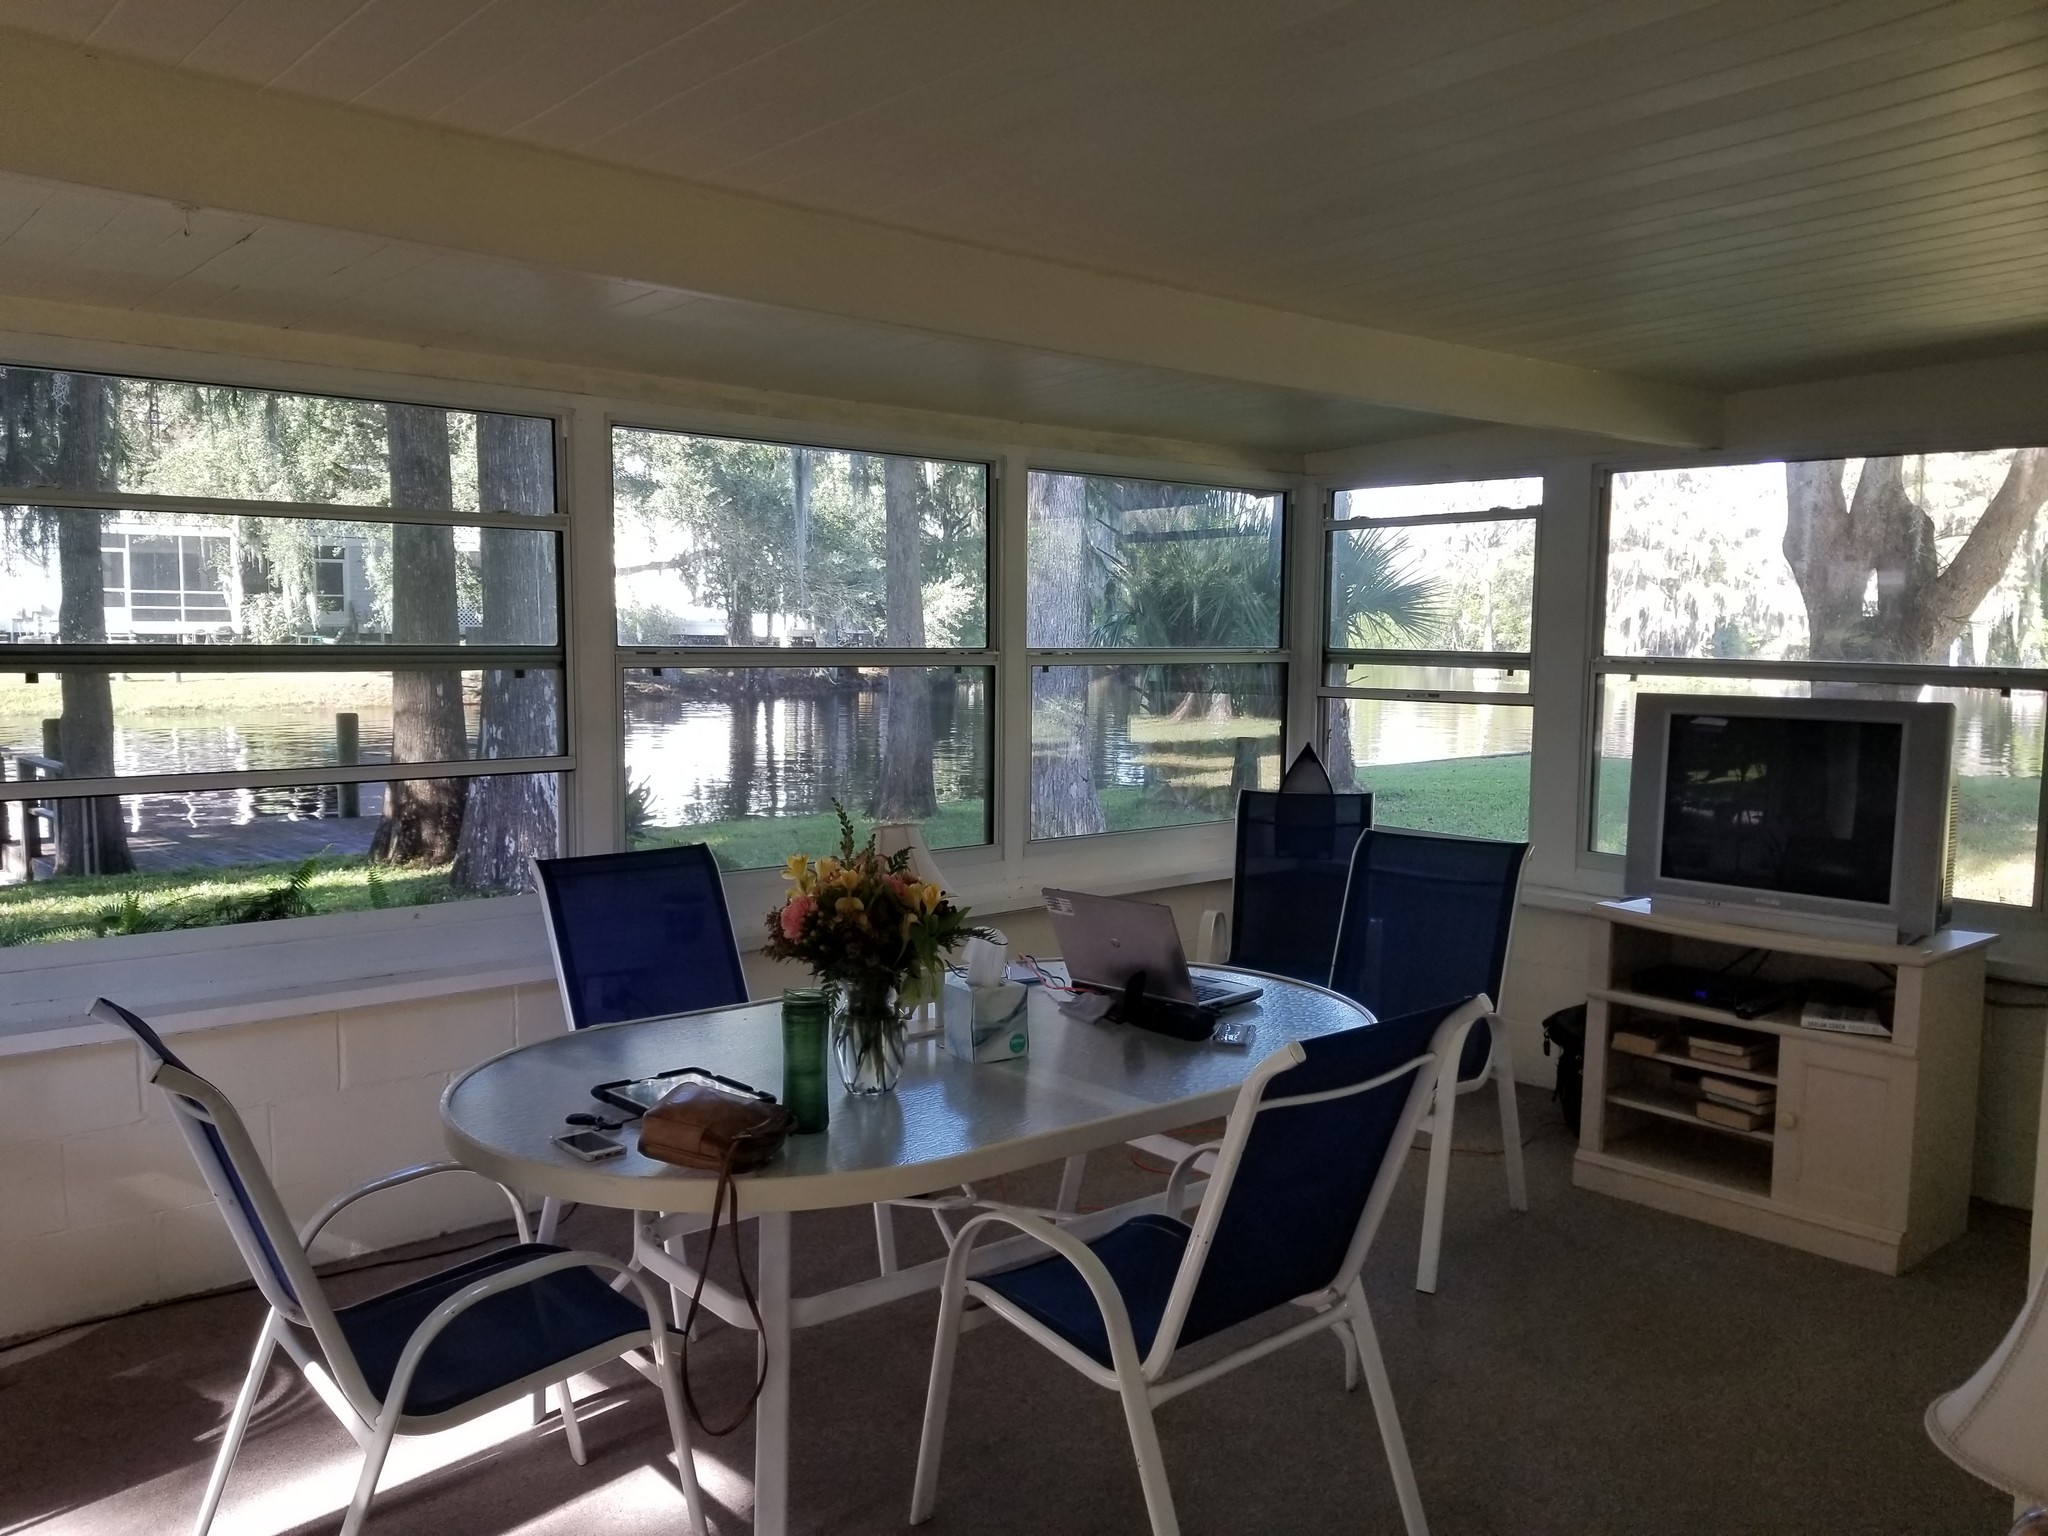 Photo of enclosed patio with 5 chairs. Small tv on shelves visible. Room with windows on all sides